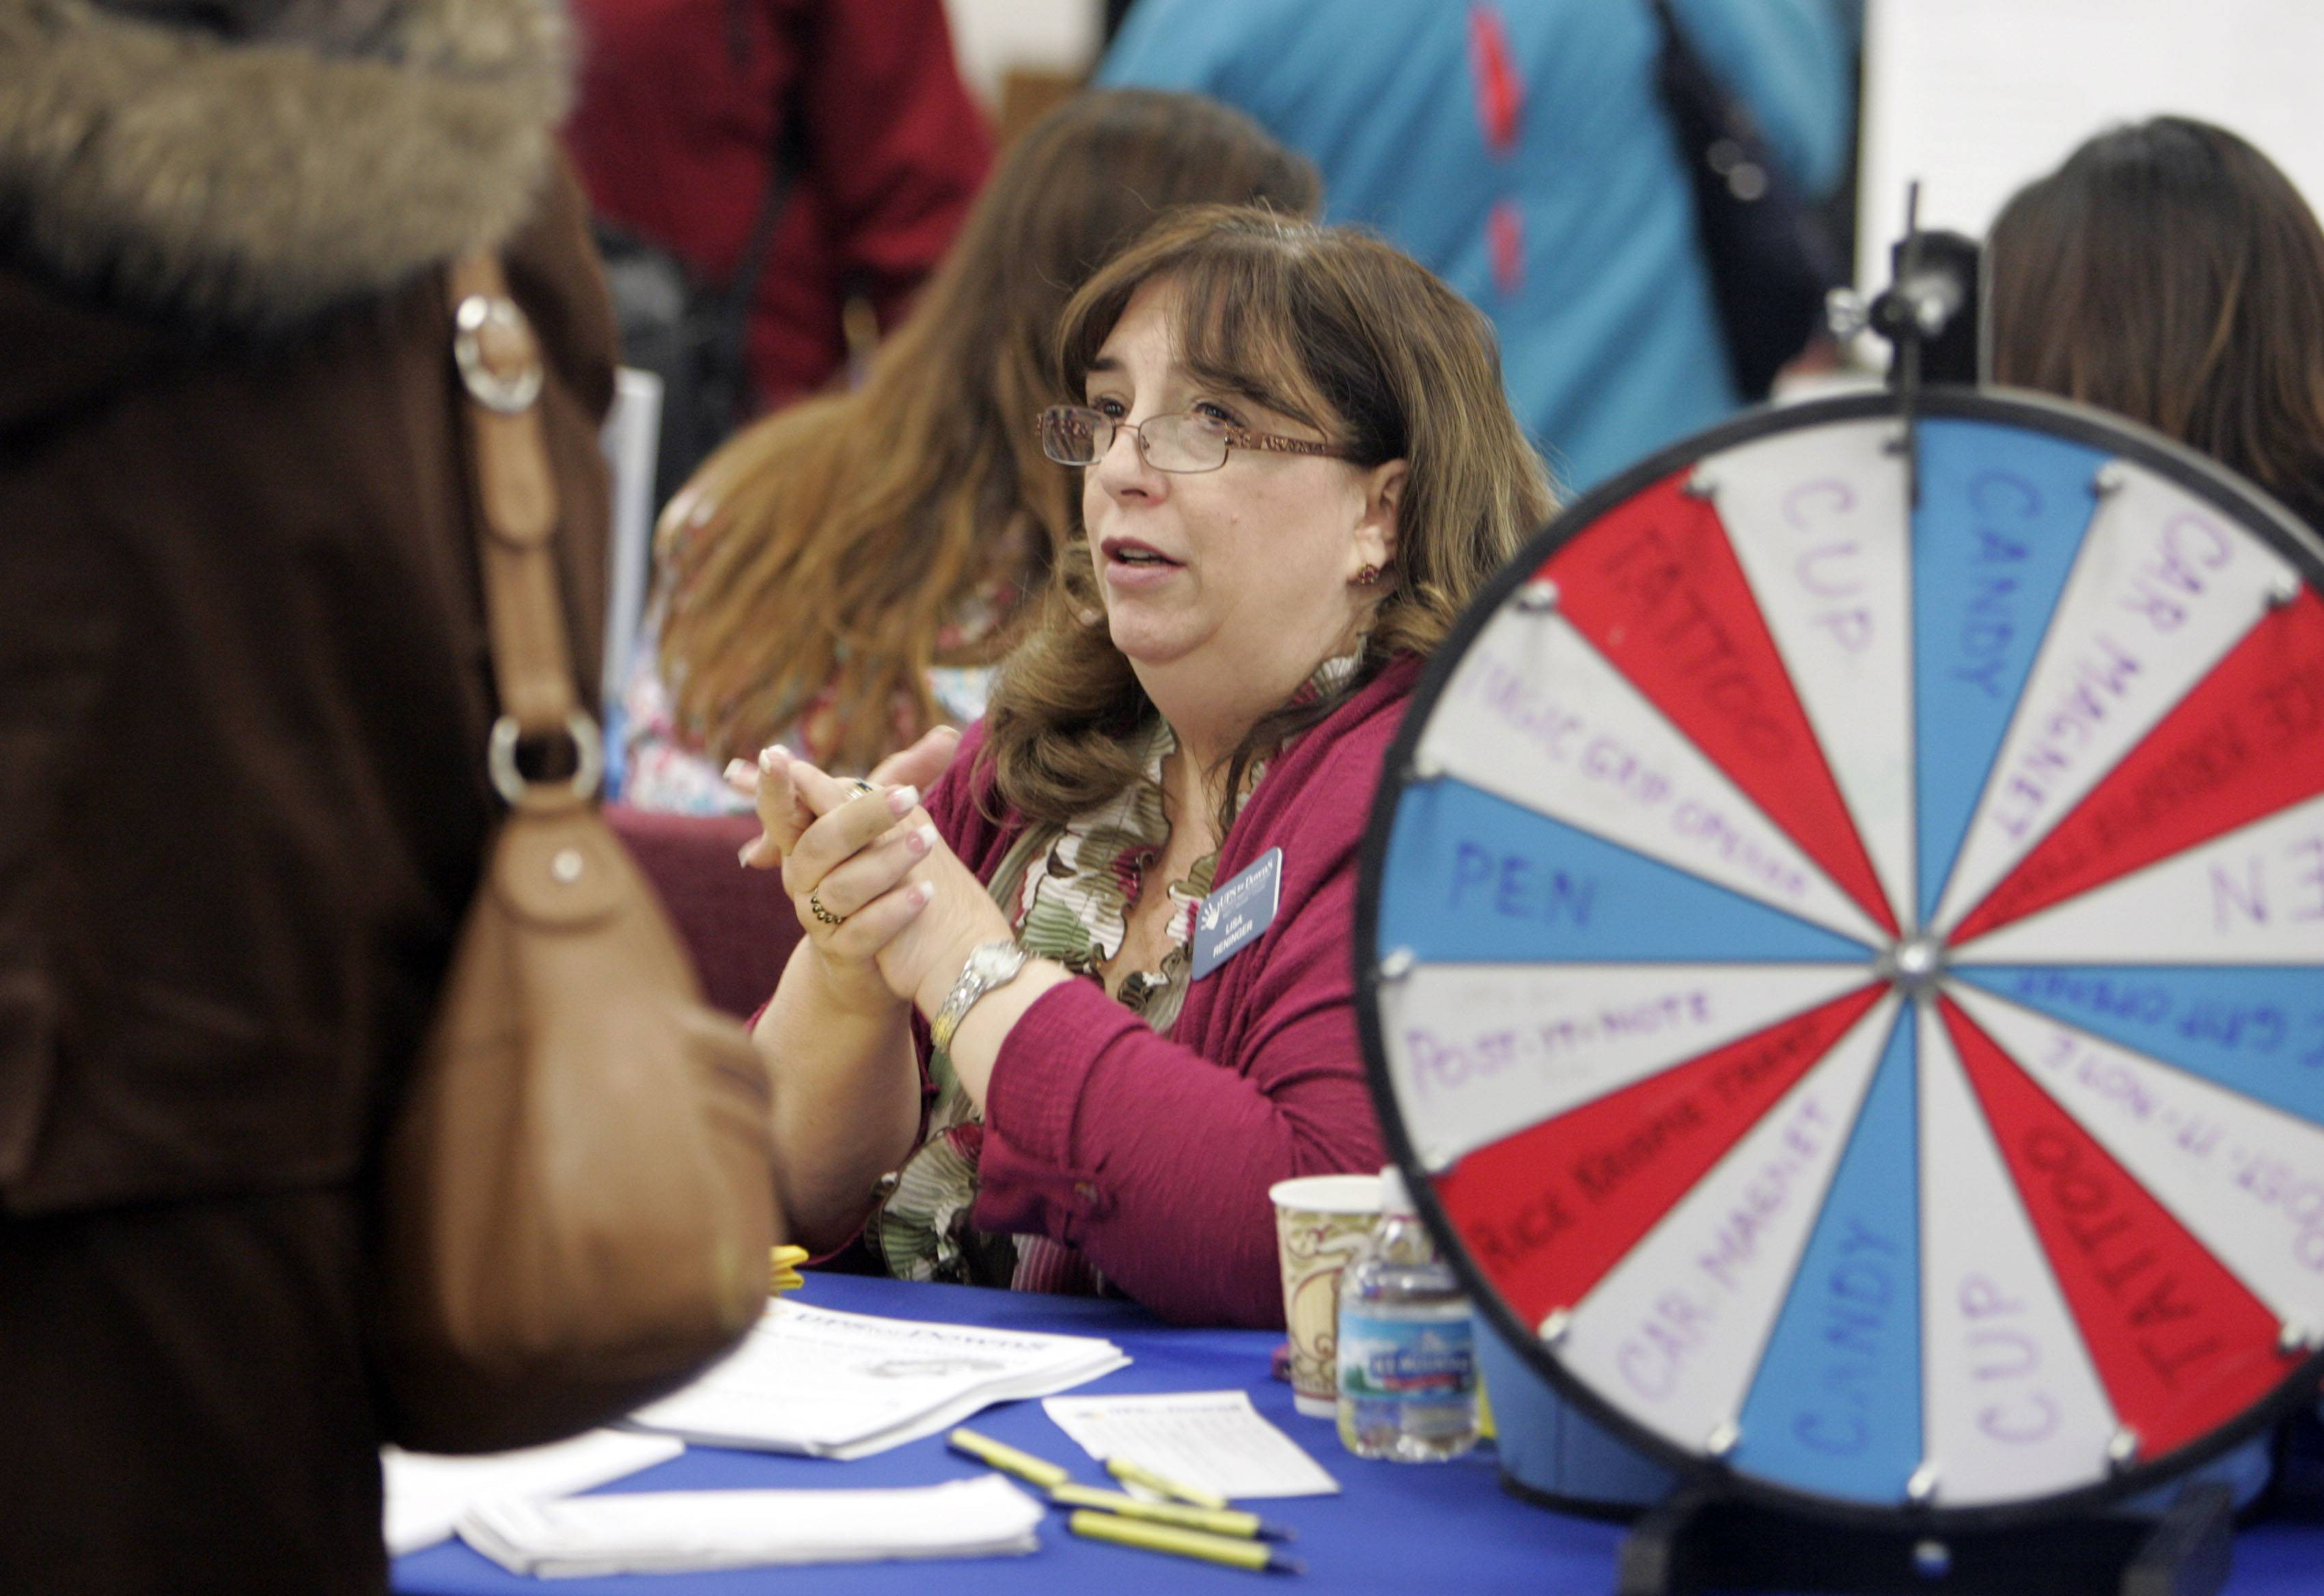 United Parent Support for Down syndrome volunteer Lisa Reninger talks to a woman during the Citizens' Advisory Council and Elgin Area School District U-46's third annual Special Needs Resource Fair last year at Elgin High School.